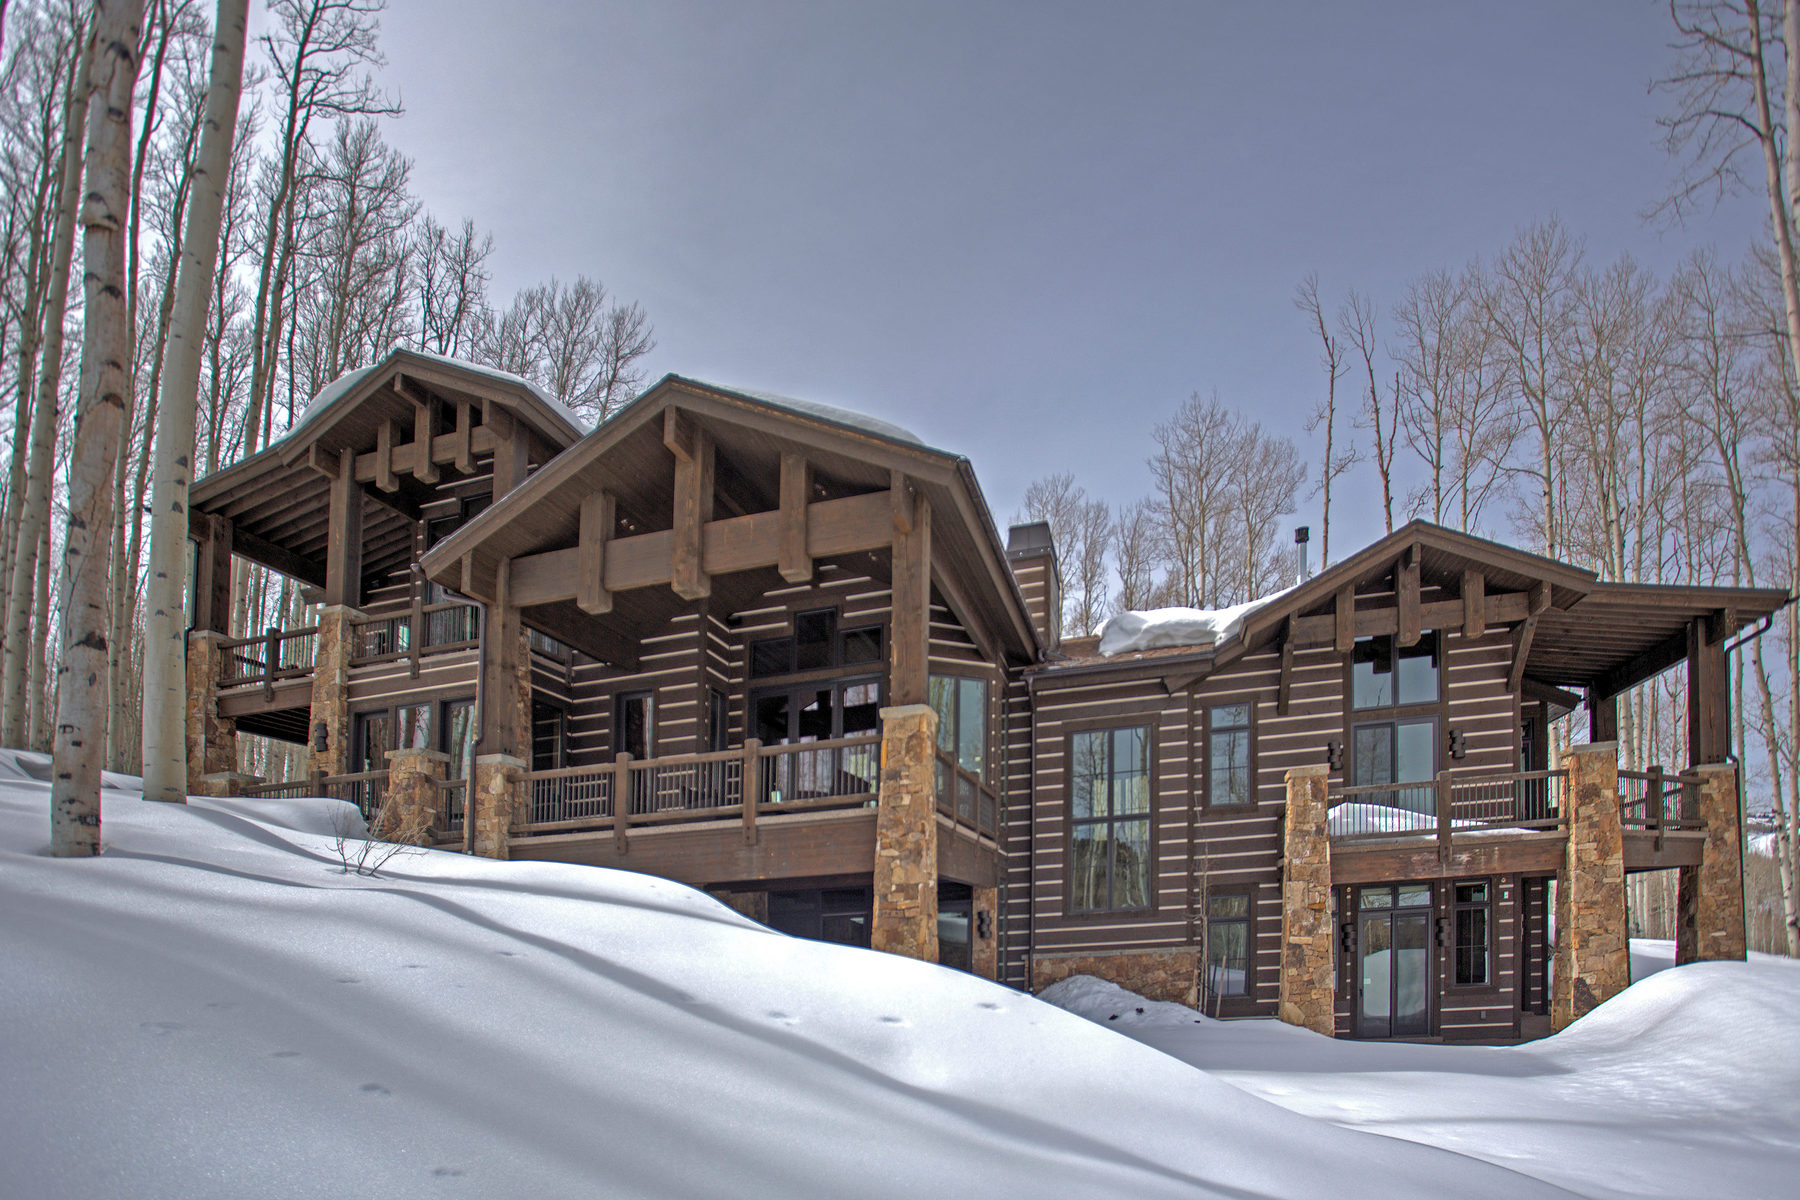 独户住宅 为 销售 在 Incredible Ski-In Ski-Out Colony Home with Mature Trees and Views 177 White Pine Canyon Rd Lot 177 Park City, 犹他州 84098 美国